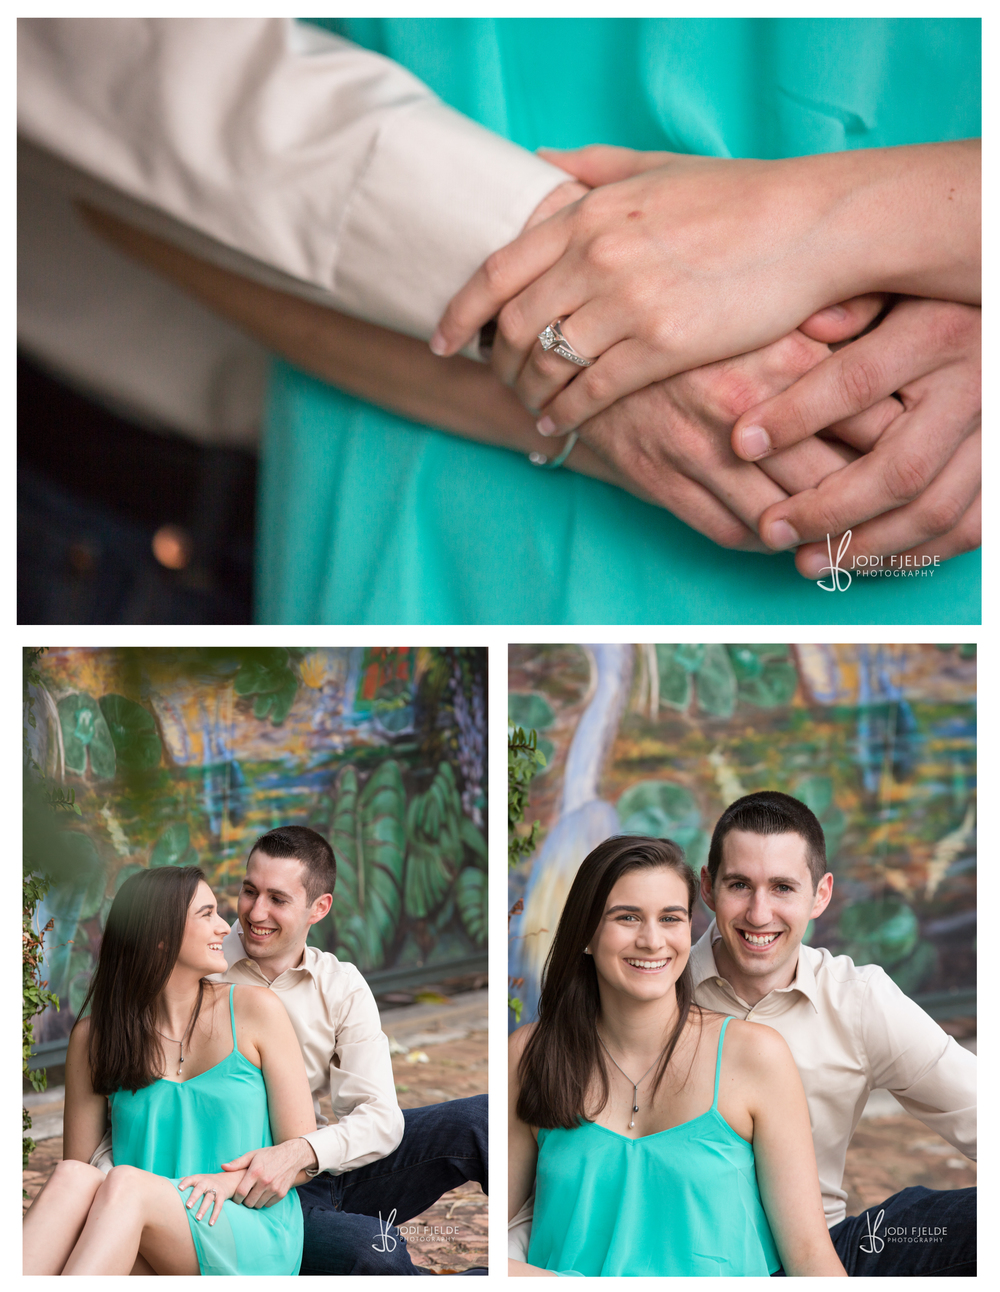 Delray_BEach_Sundy_HouseFlorida_engagement_E-session_Allison_&_Matt_photography_jodi_Fjelde_photography_2.jpg